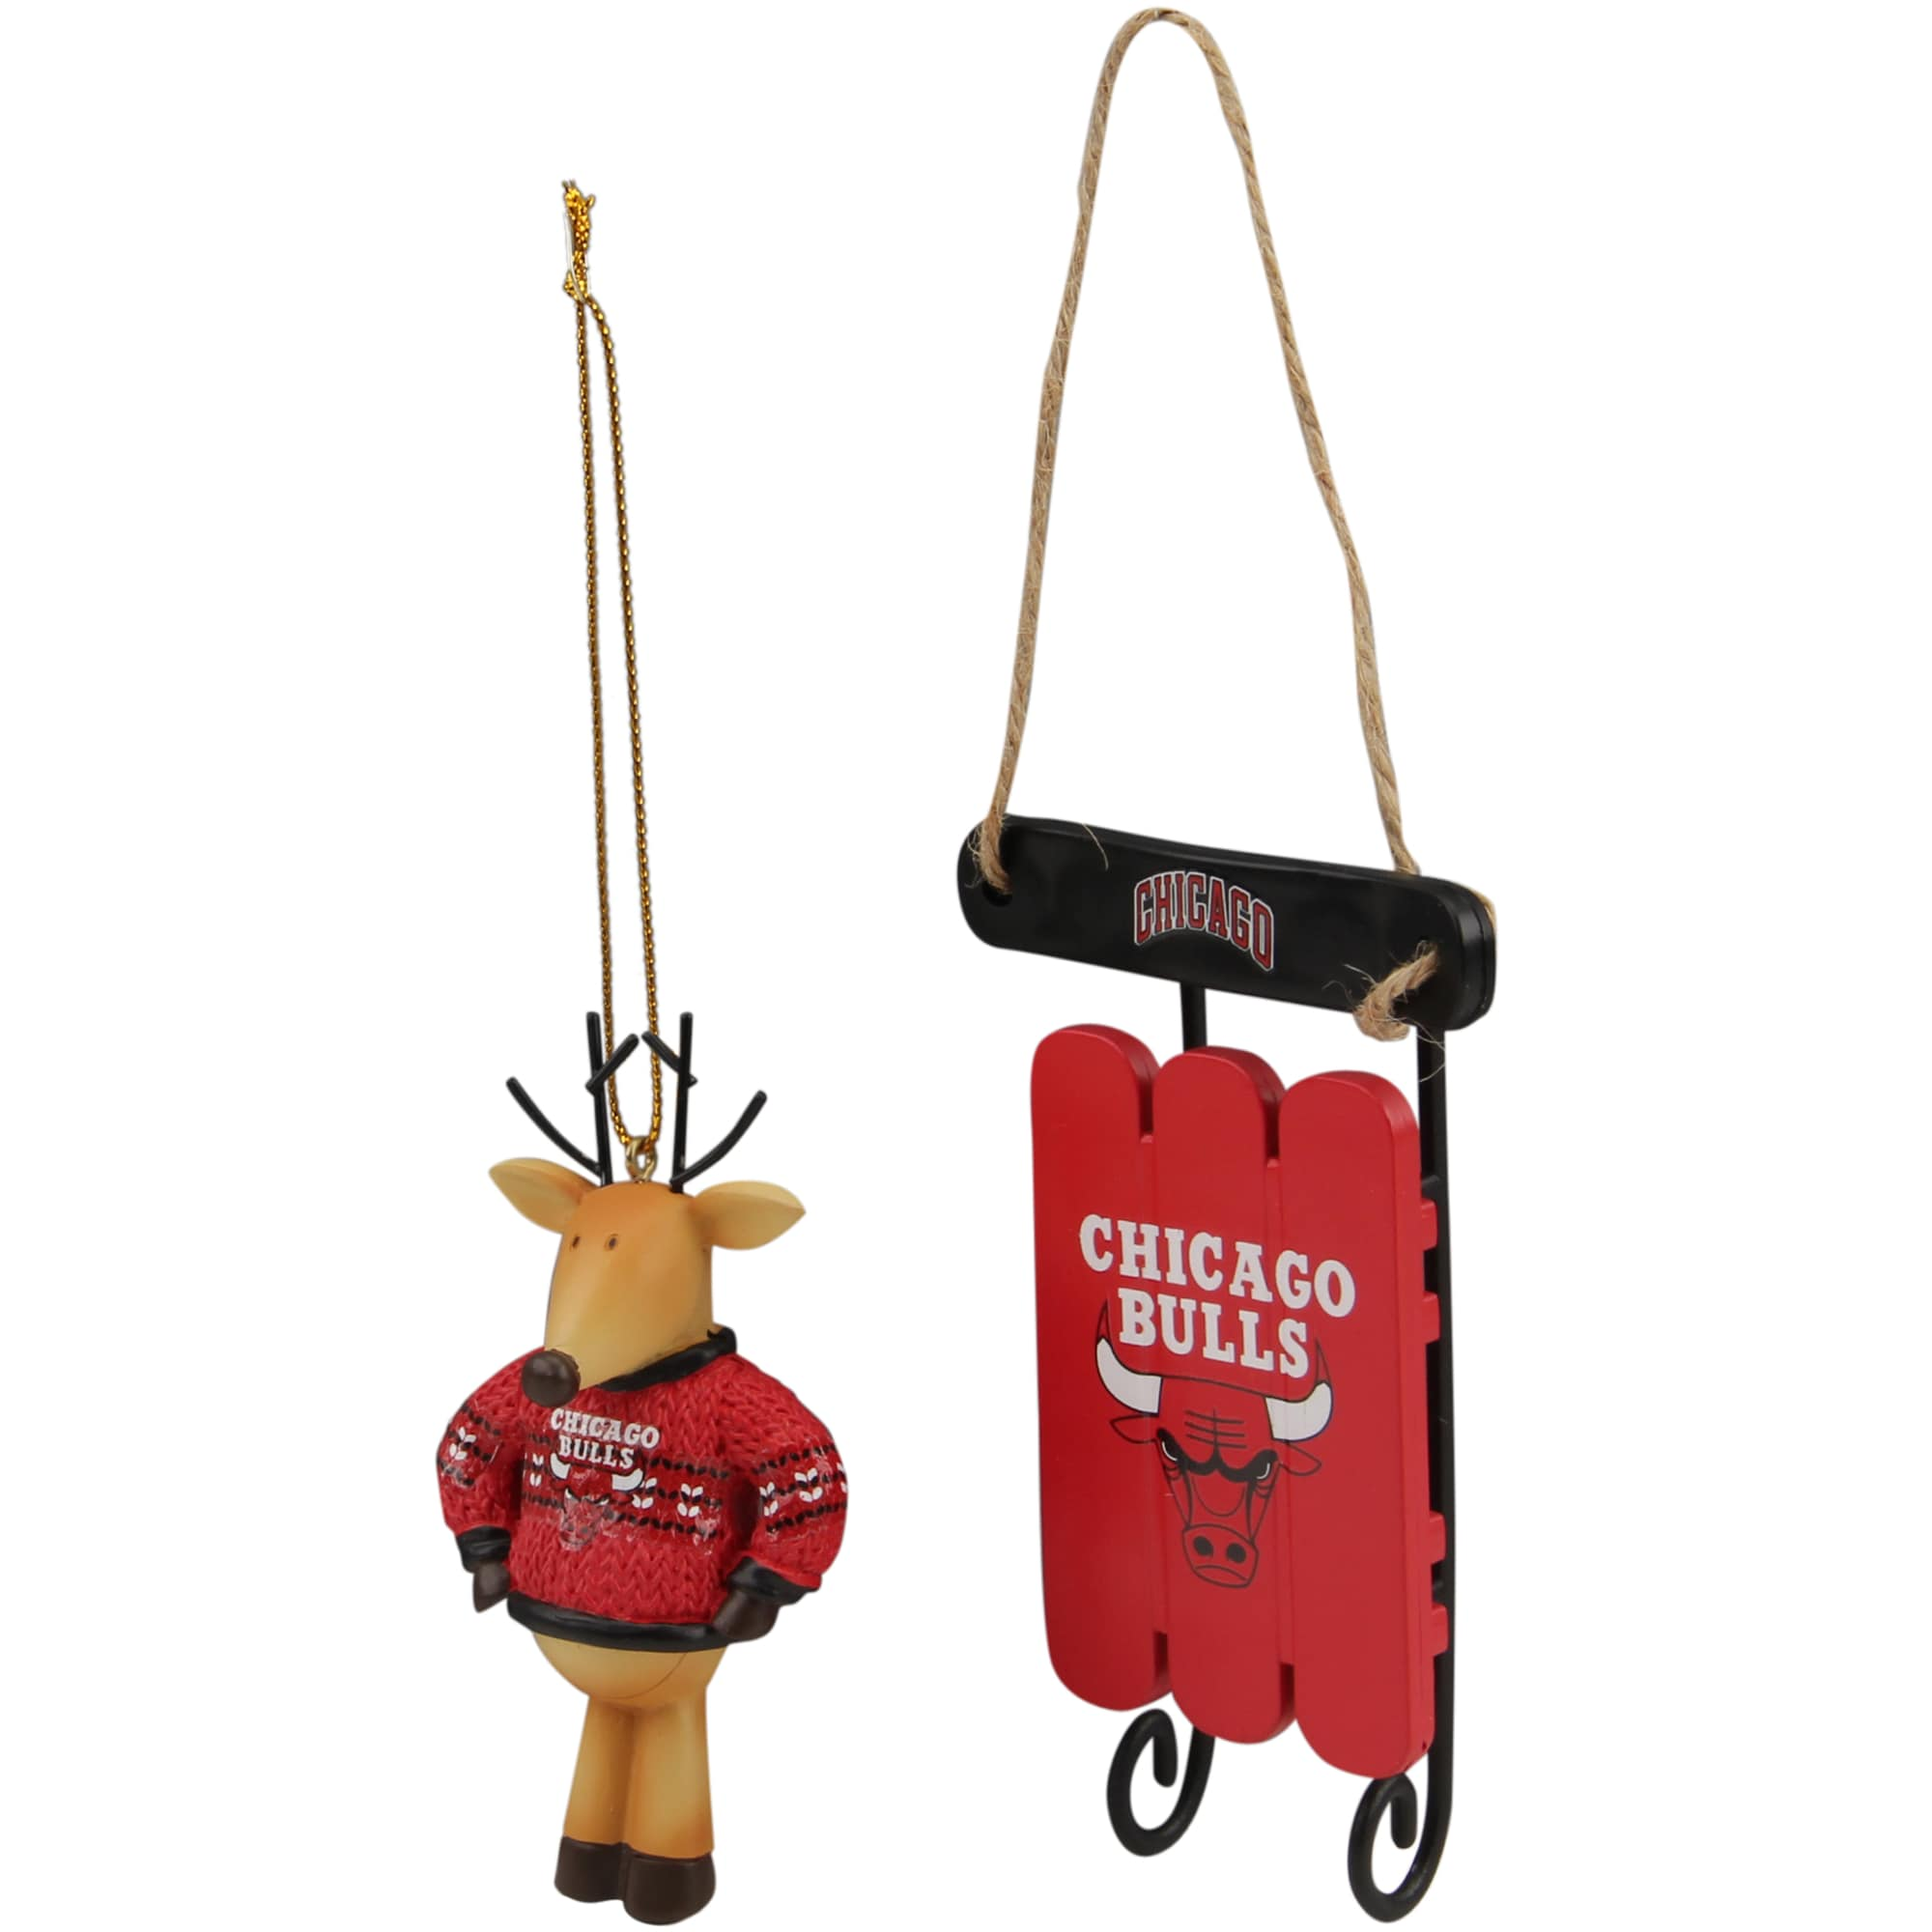 Chicago Bulls Reindeer with Sweater & Sleigh Ornament 2-Pack Set